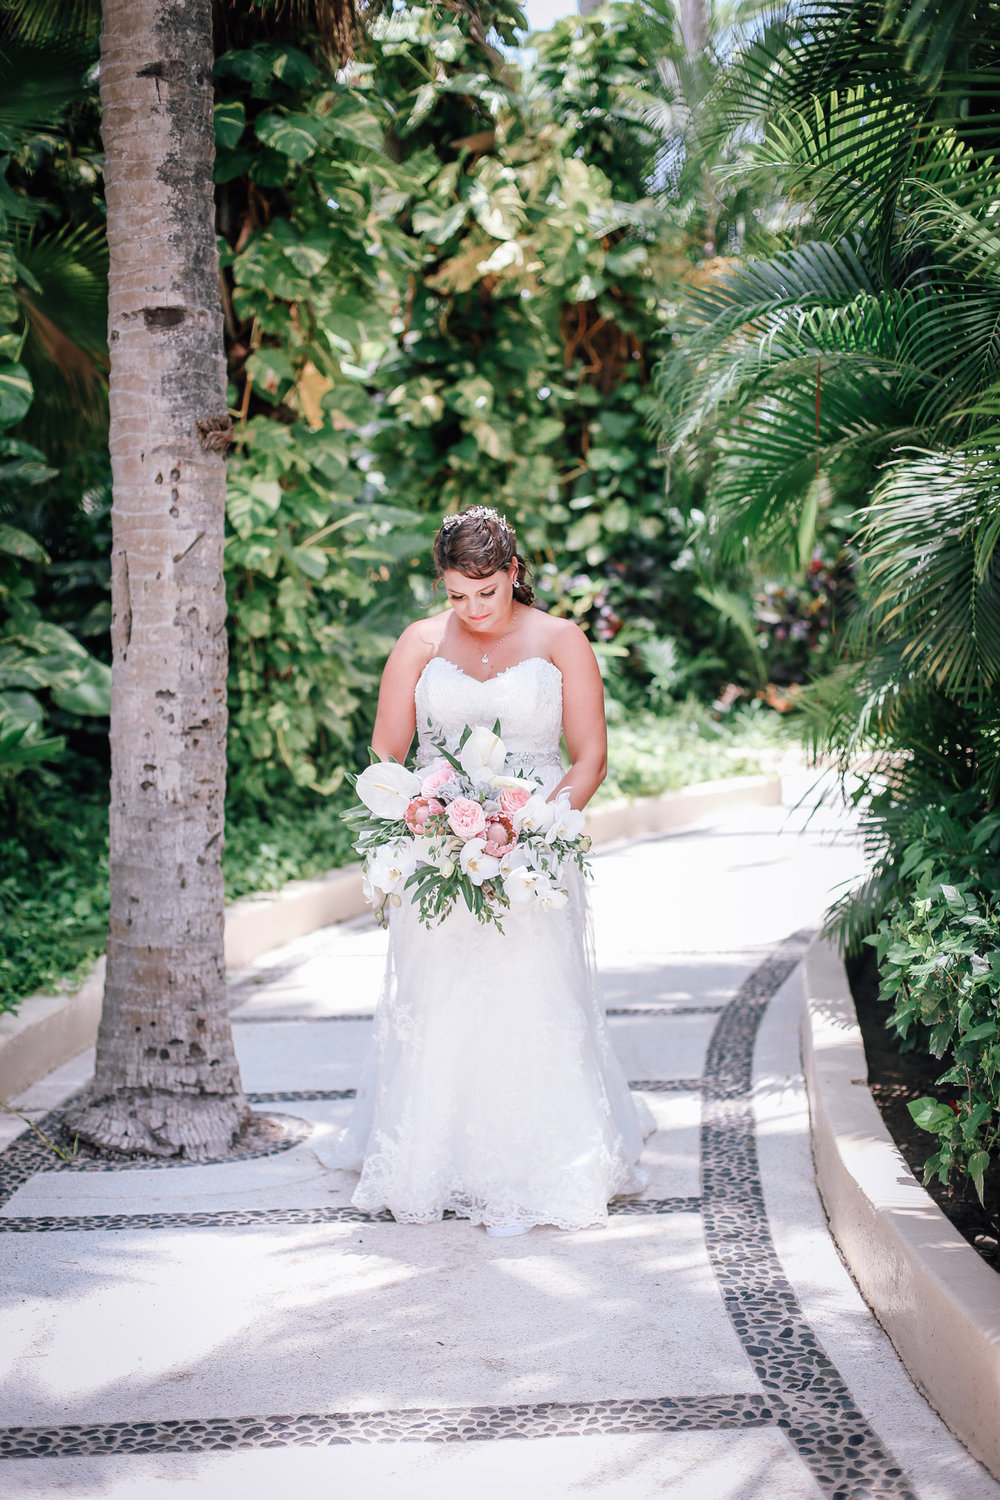 Tiffany and Ryan - Puerto Vallarta Wedding Photographer - 44.jpg